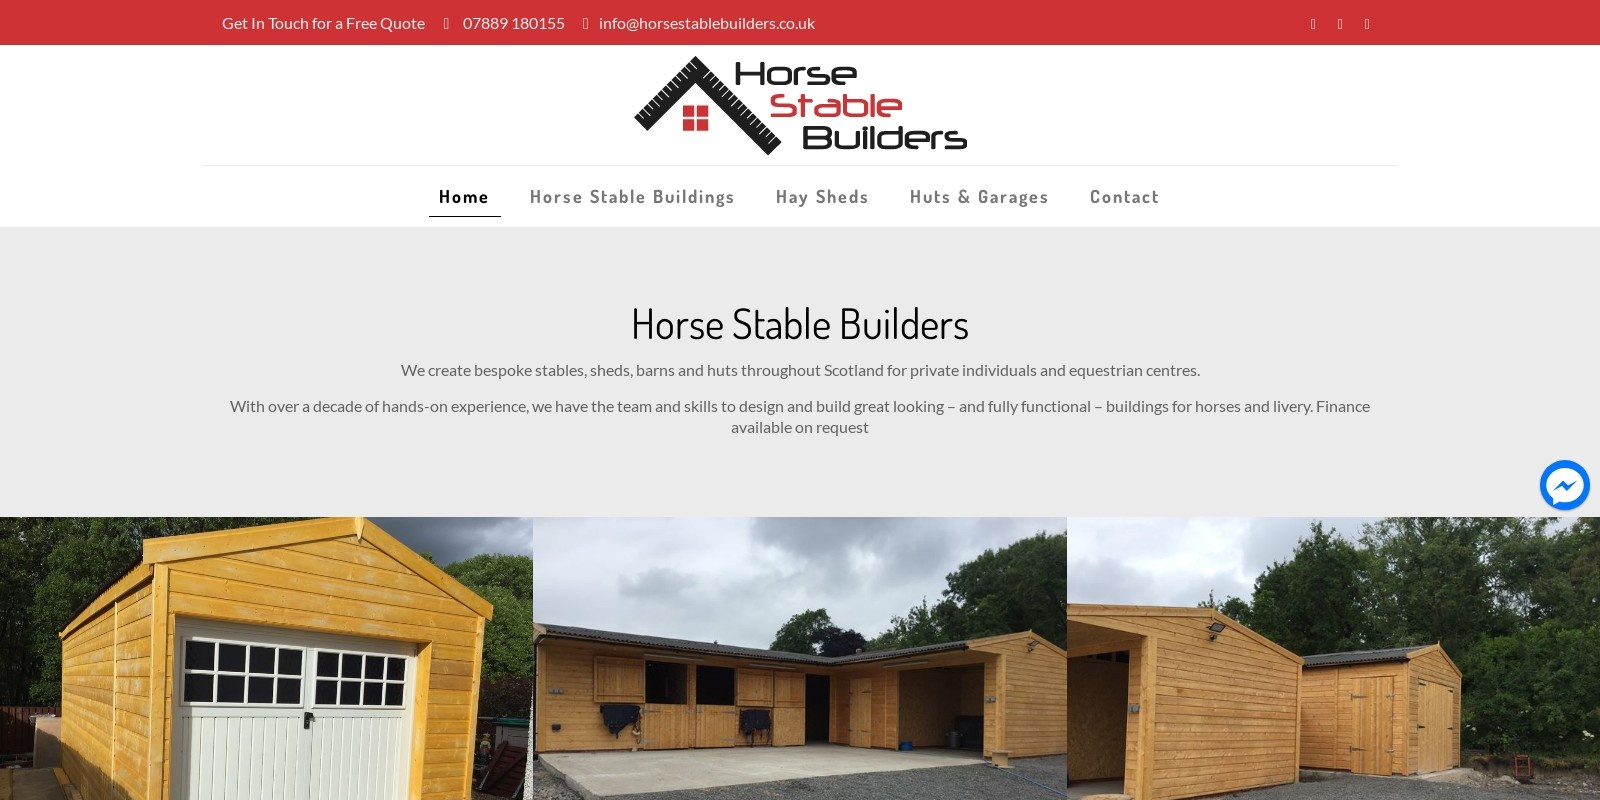 Preview of https://www.horsestablebuilders.co.uk